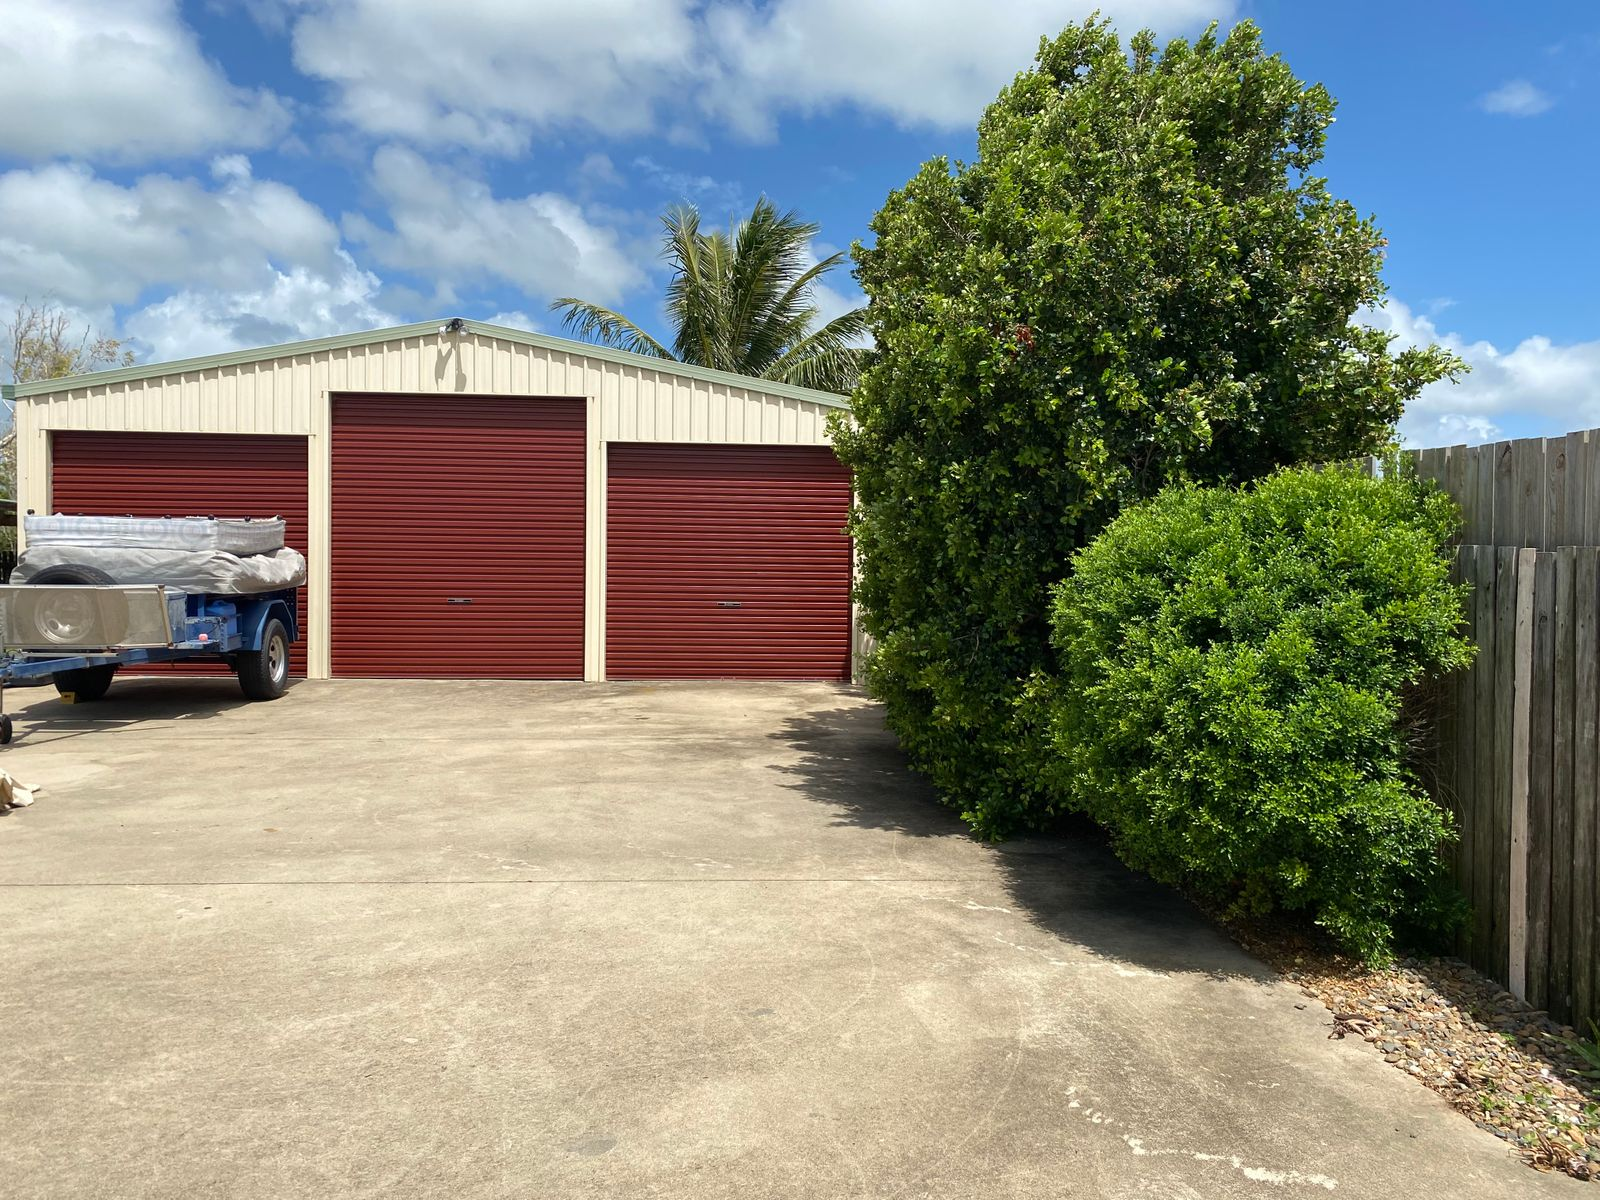 28 Audrena Street, Hay Point, QLD 4740